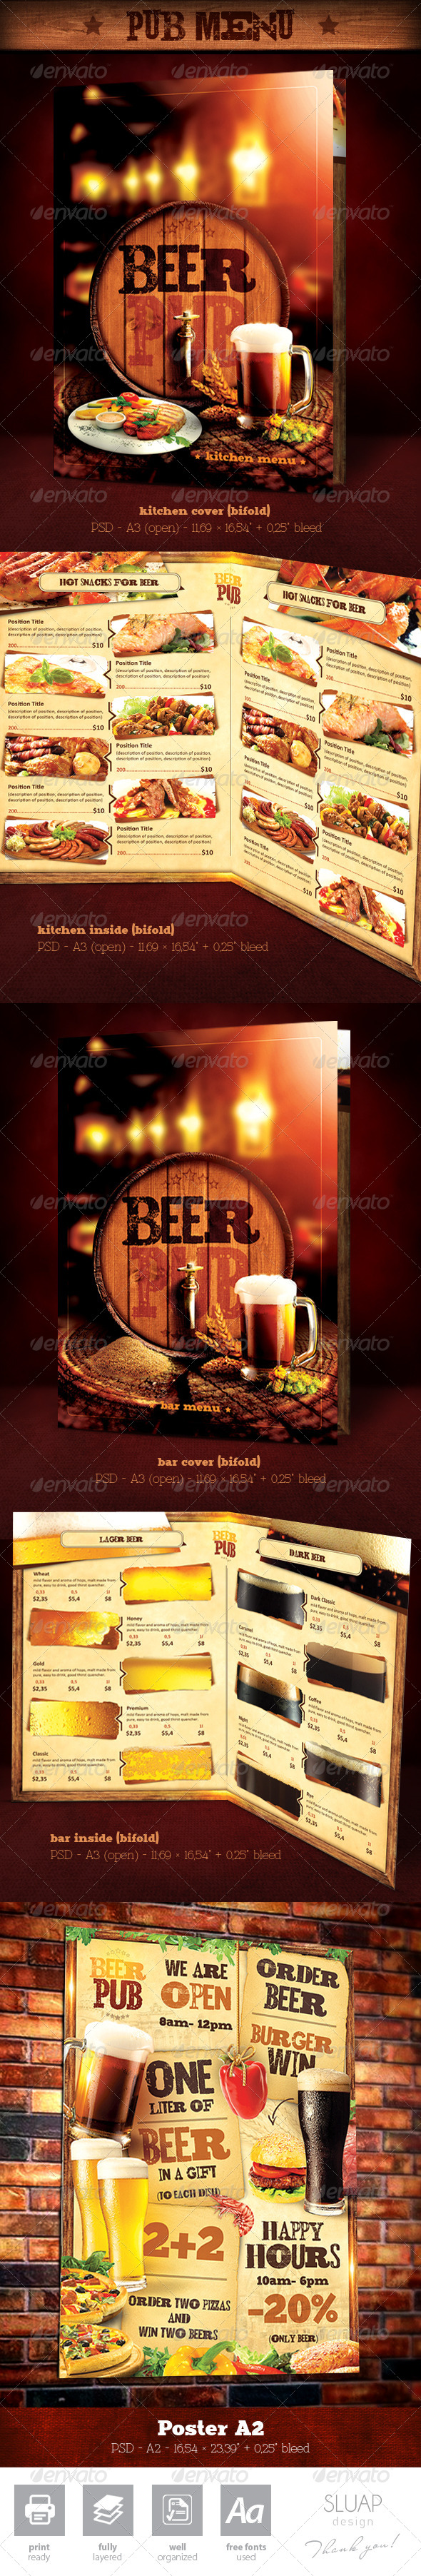 "Template Menu Design and Poster ""Beer Pub"" - Food Menus Print Templates"